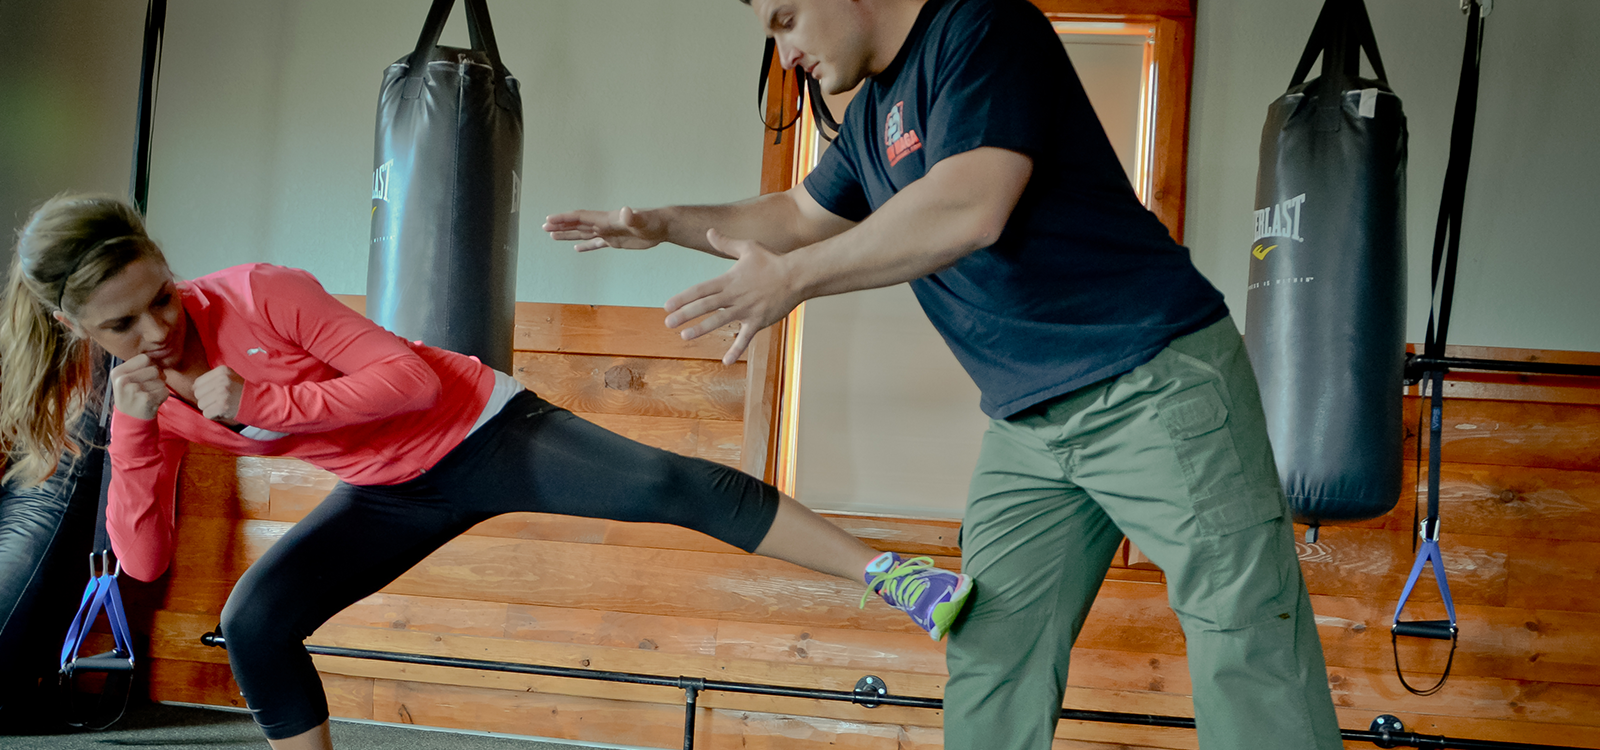 <div class='slider_caption'><h1>Self-Defense Seminars</h1> 			<a class='slider-readmore' href='https://spartankravmaga.com/courses/'>Self Defense for Real People</a></div>